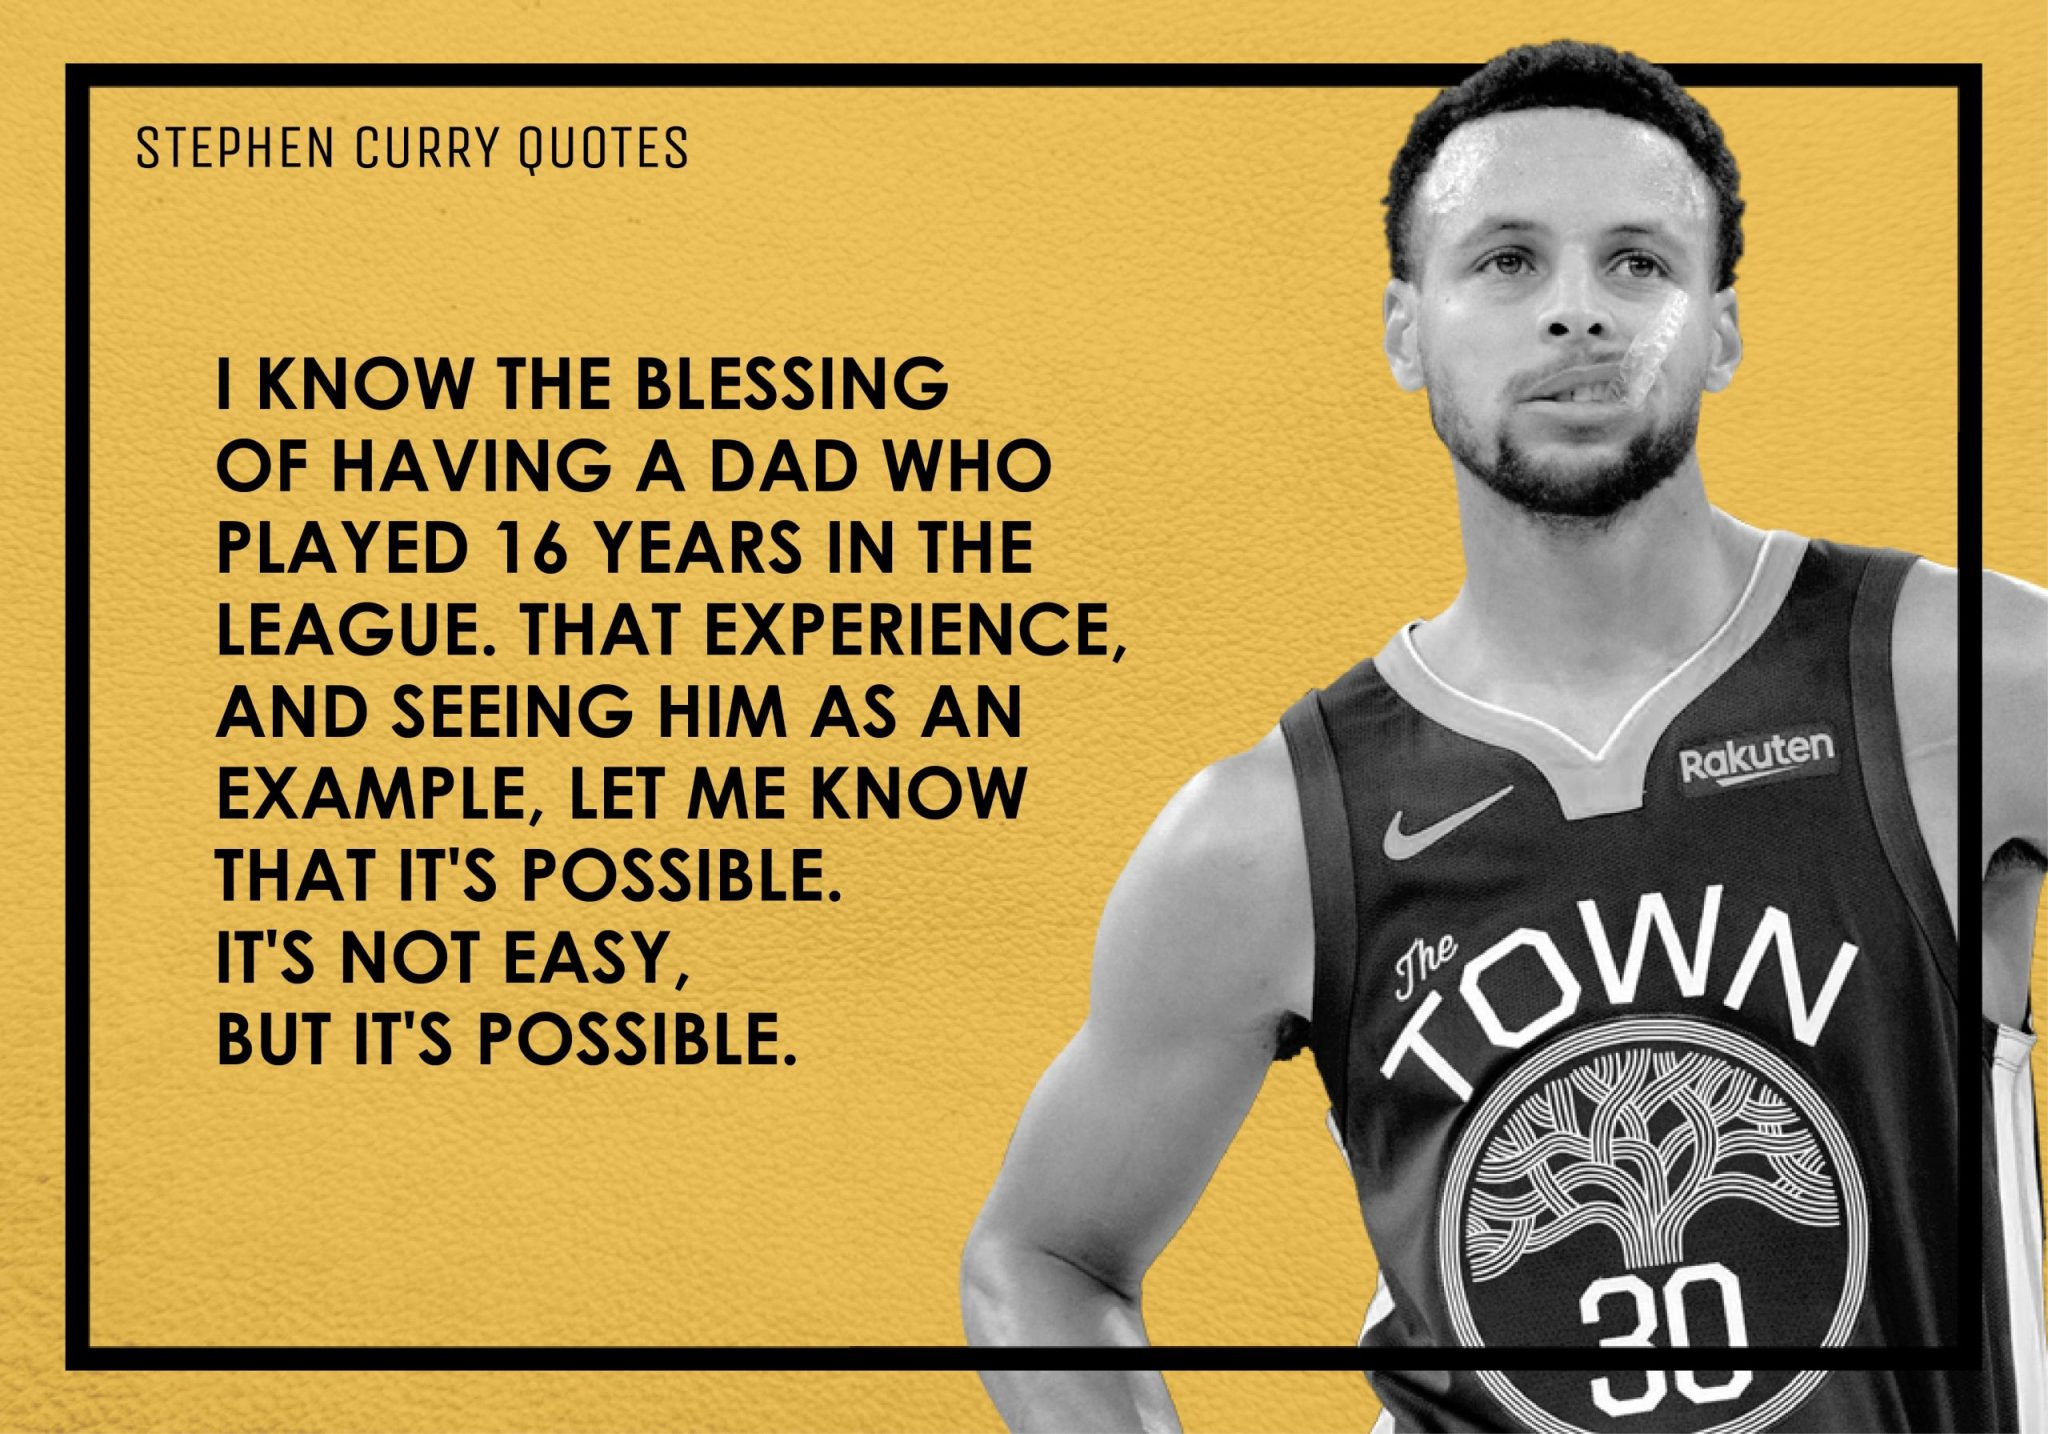 Stephen Curry Quotes (8)